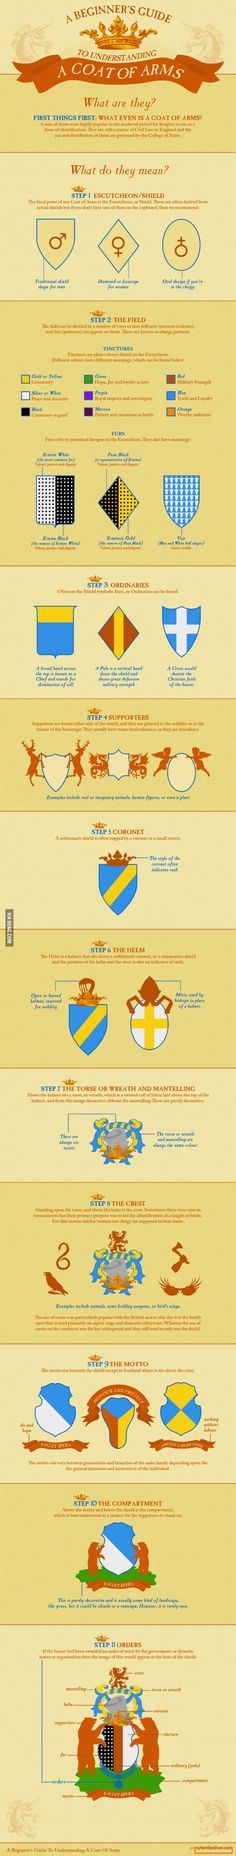 guide for medieval knights, kind of define fashion guide up till now, see colours